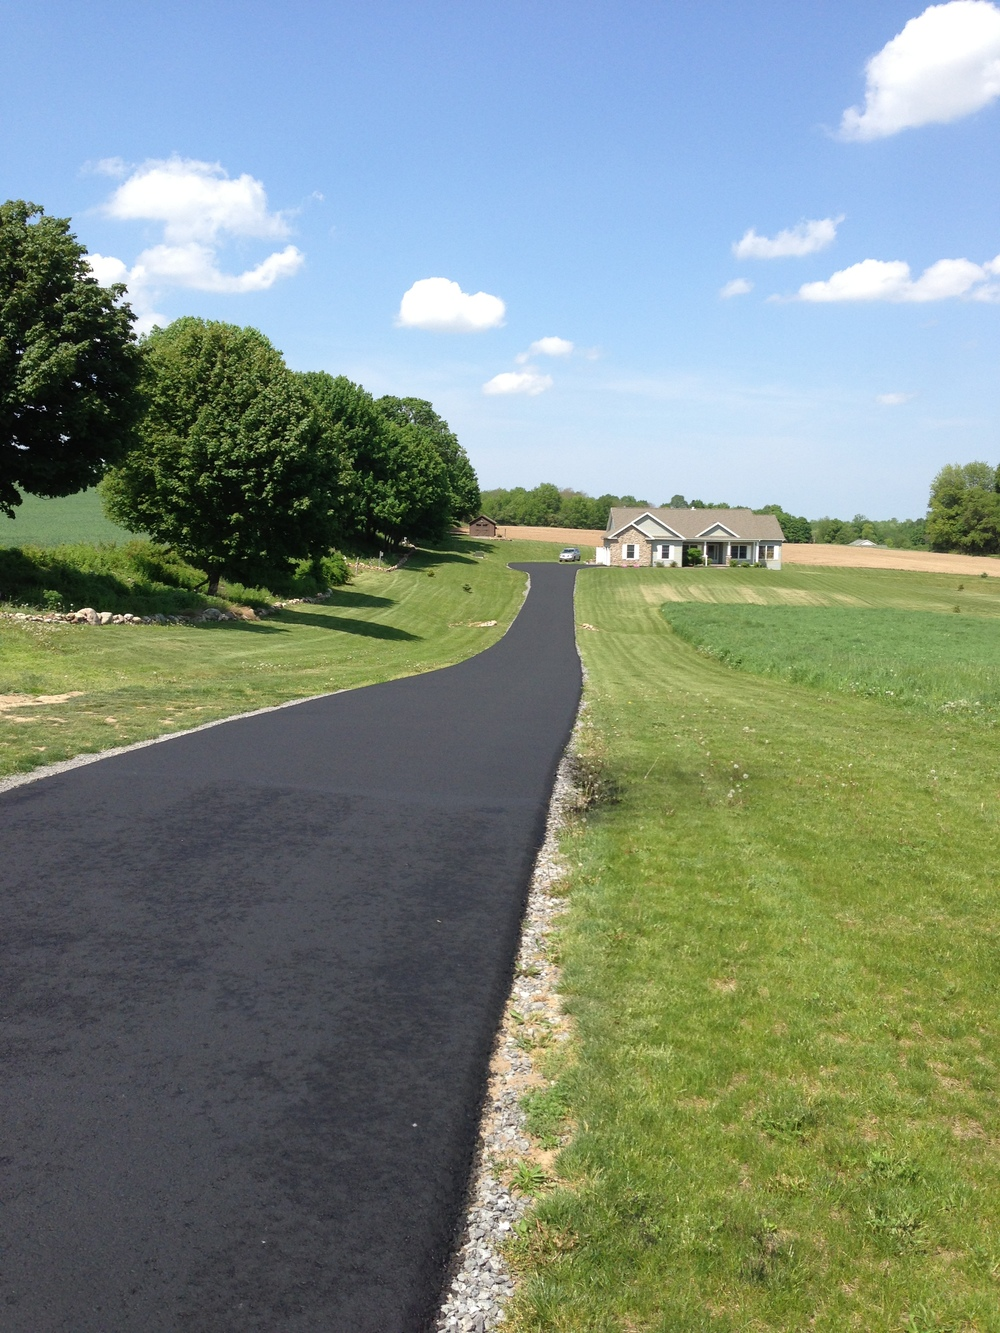 SouthernTier Sealcoating provides Commerical and Residential asphalt sealing services. We provide crack repairs, asphalt repair, power blowing, sweeping and edging for Victor NY, Mendon NY, Honeoye Falls NY, Pittsford NY, Fairport NY, Avon NY, Lima NY, Canandaigua NY, Bloomfield NY, Henrietta NY and Rochester NY.